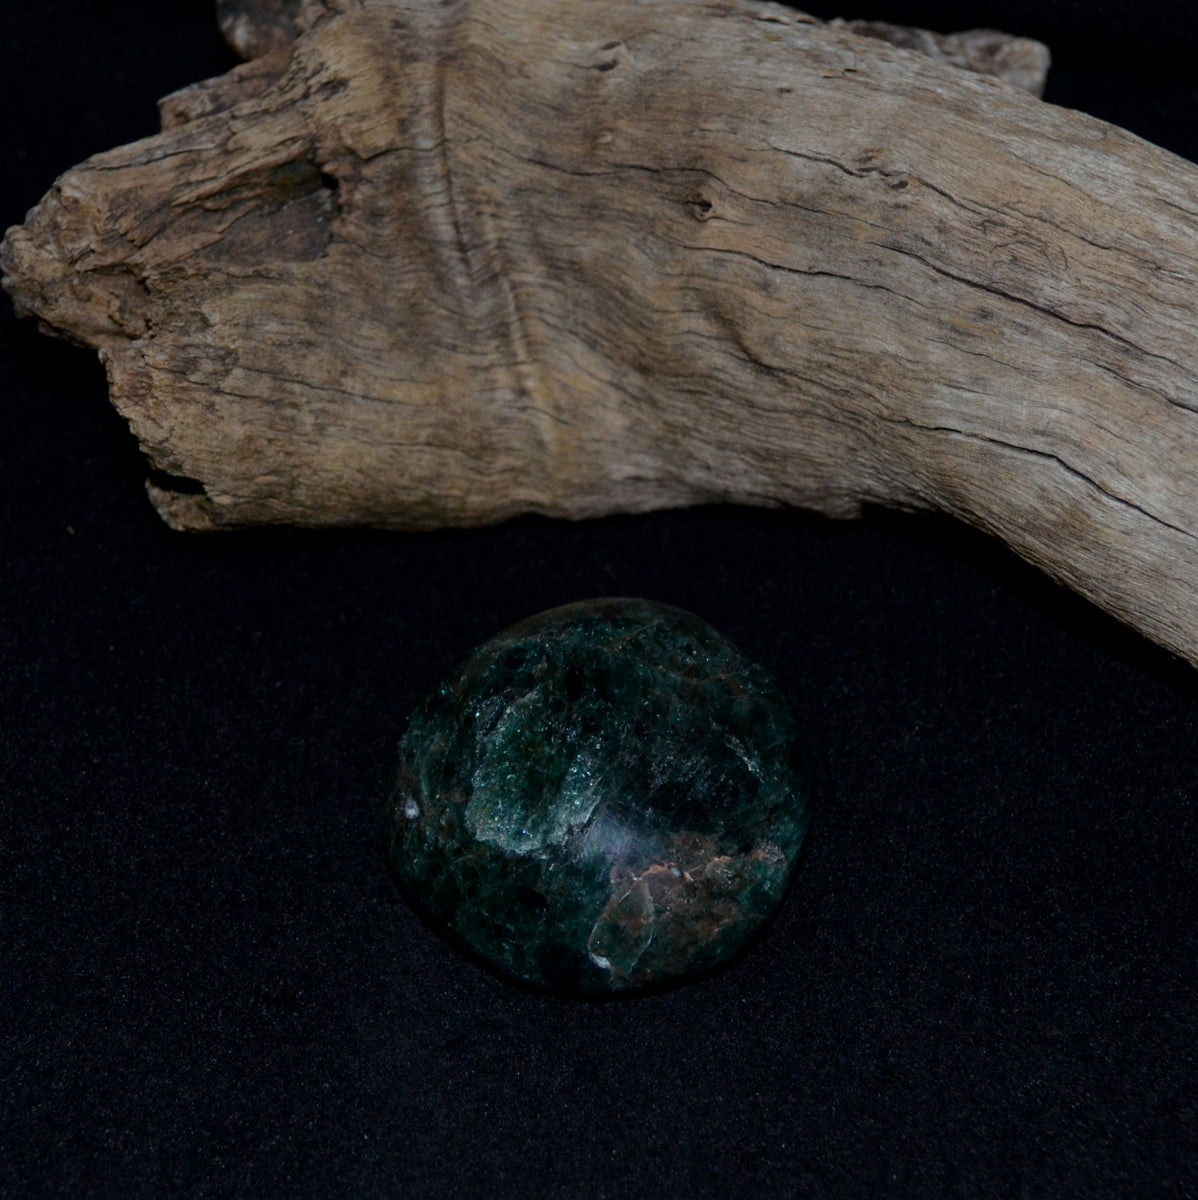 Blue Green Apatite Polished Palmstone - Intuition Communication Focus - Now at Illiom Crystals - Afterpay Available